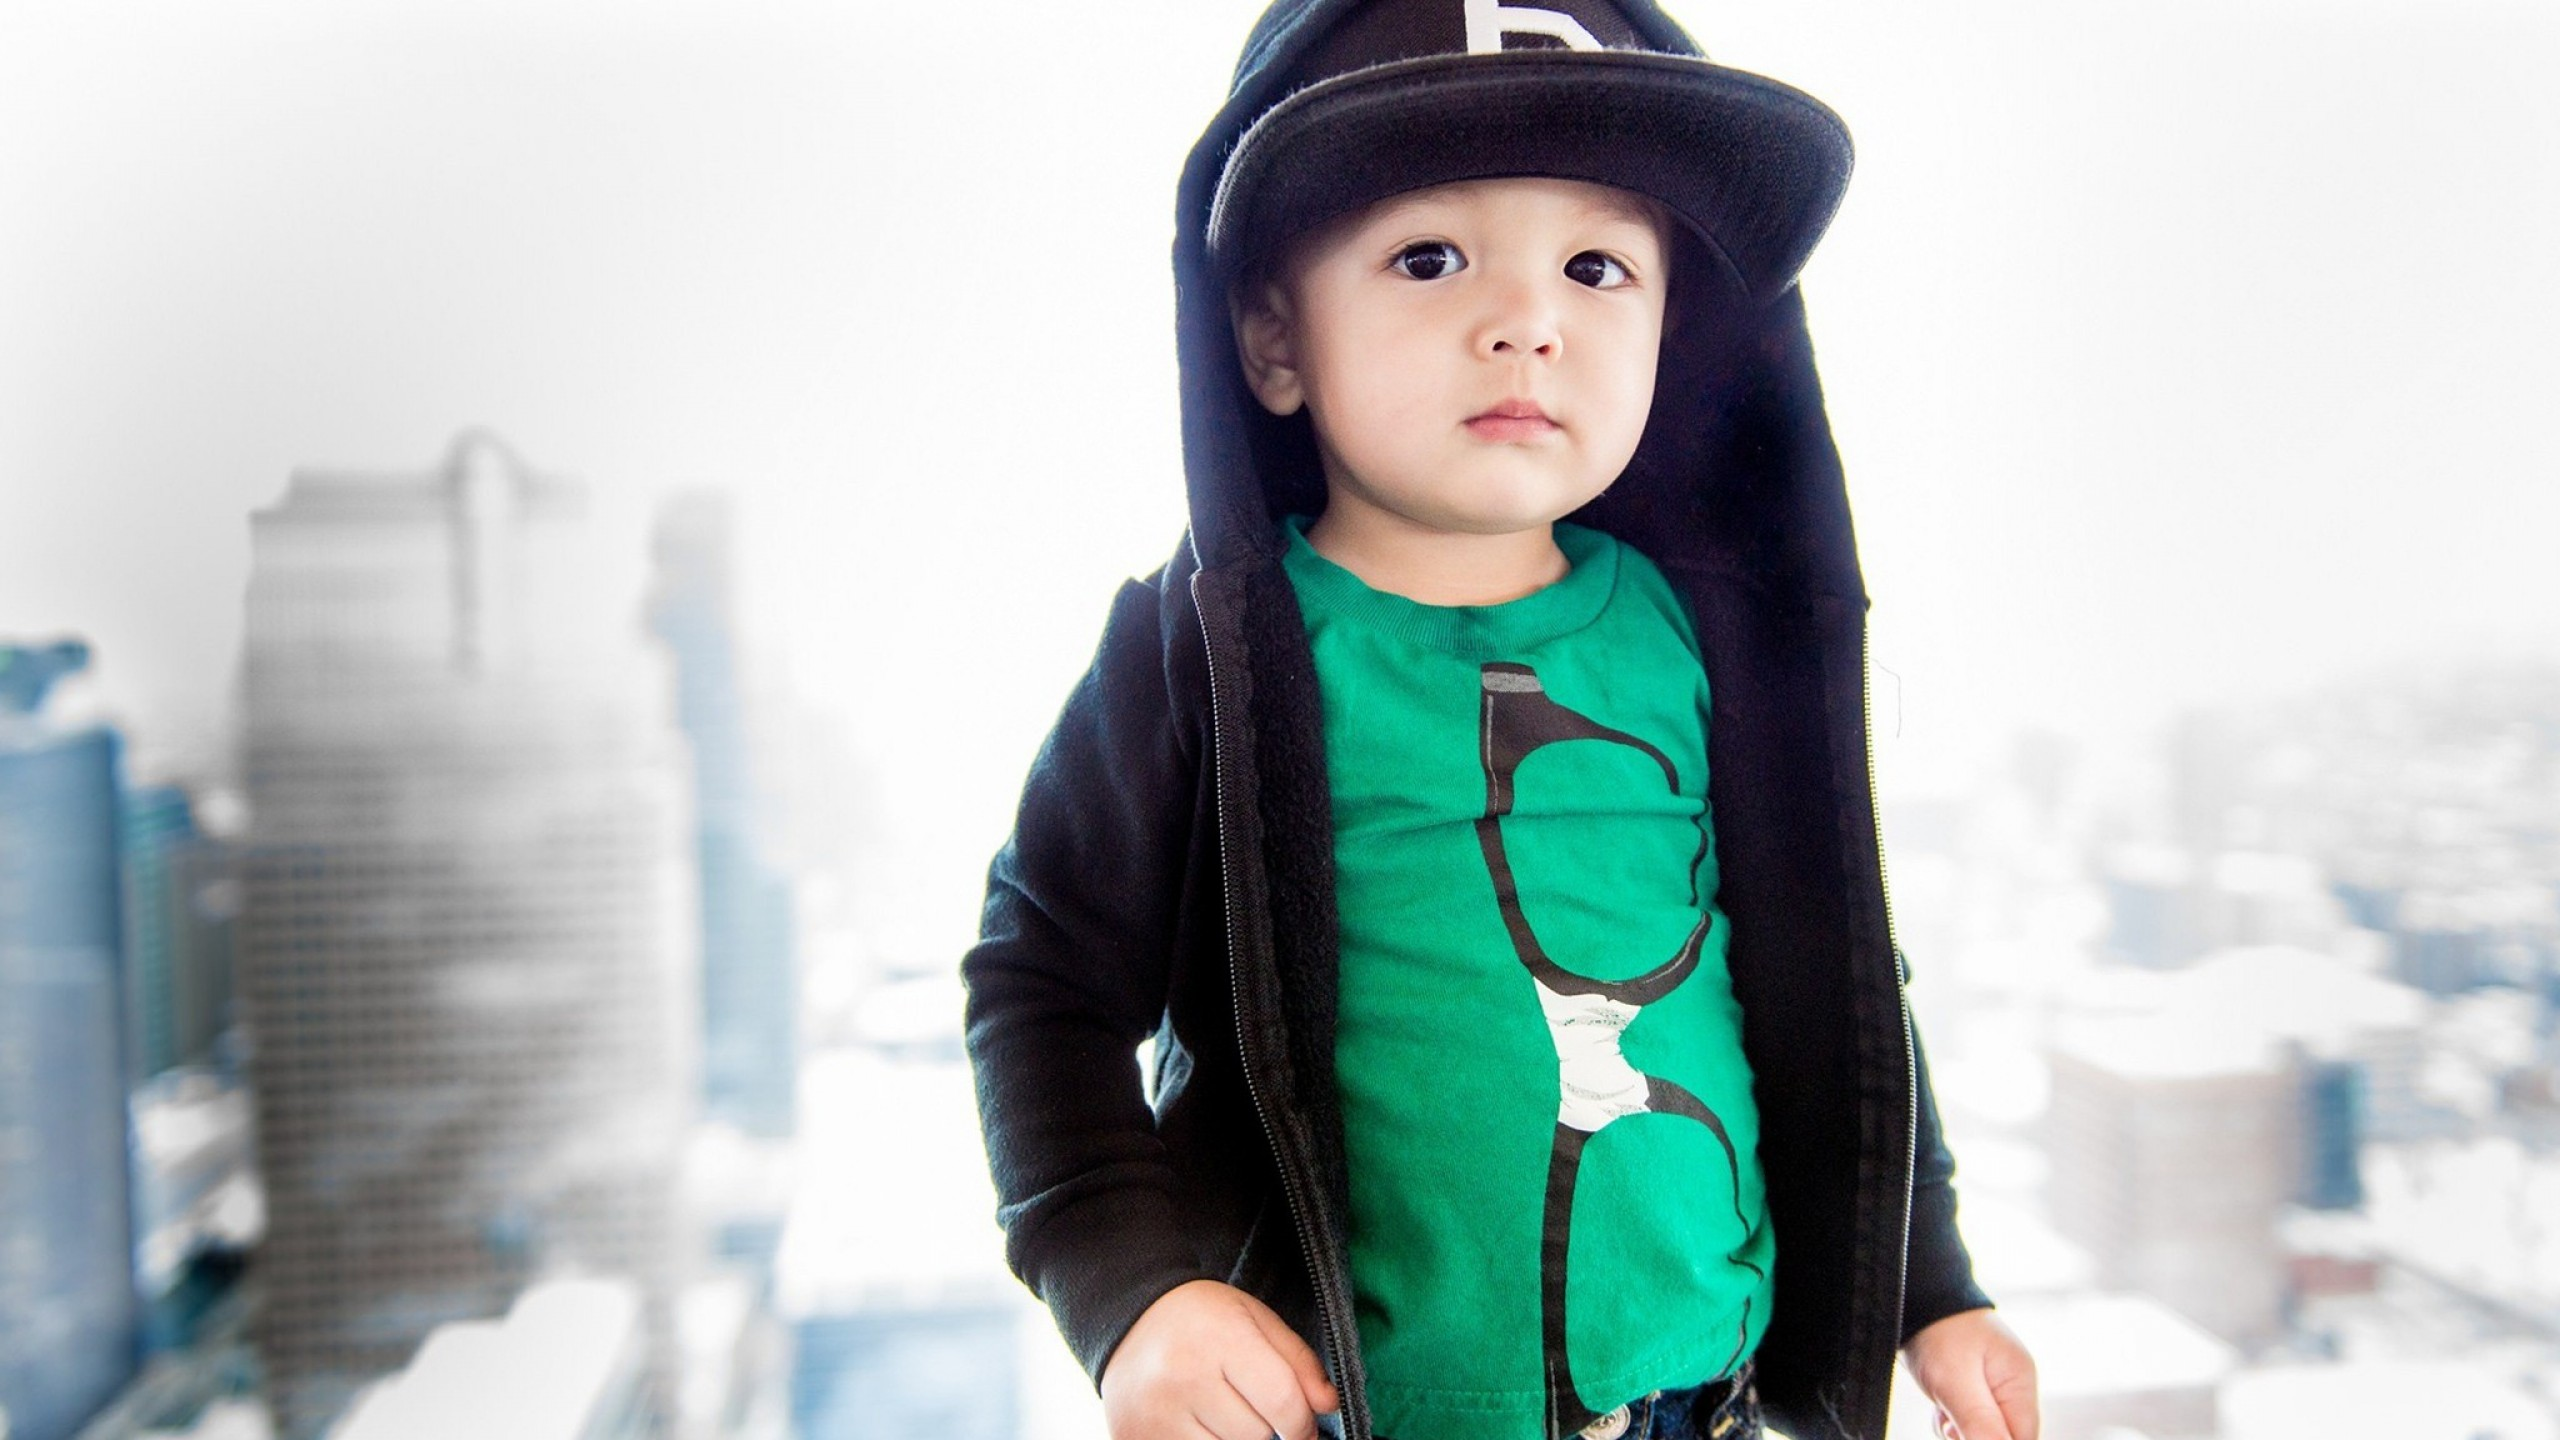 Cool Stylish Baby Wallpaper